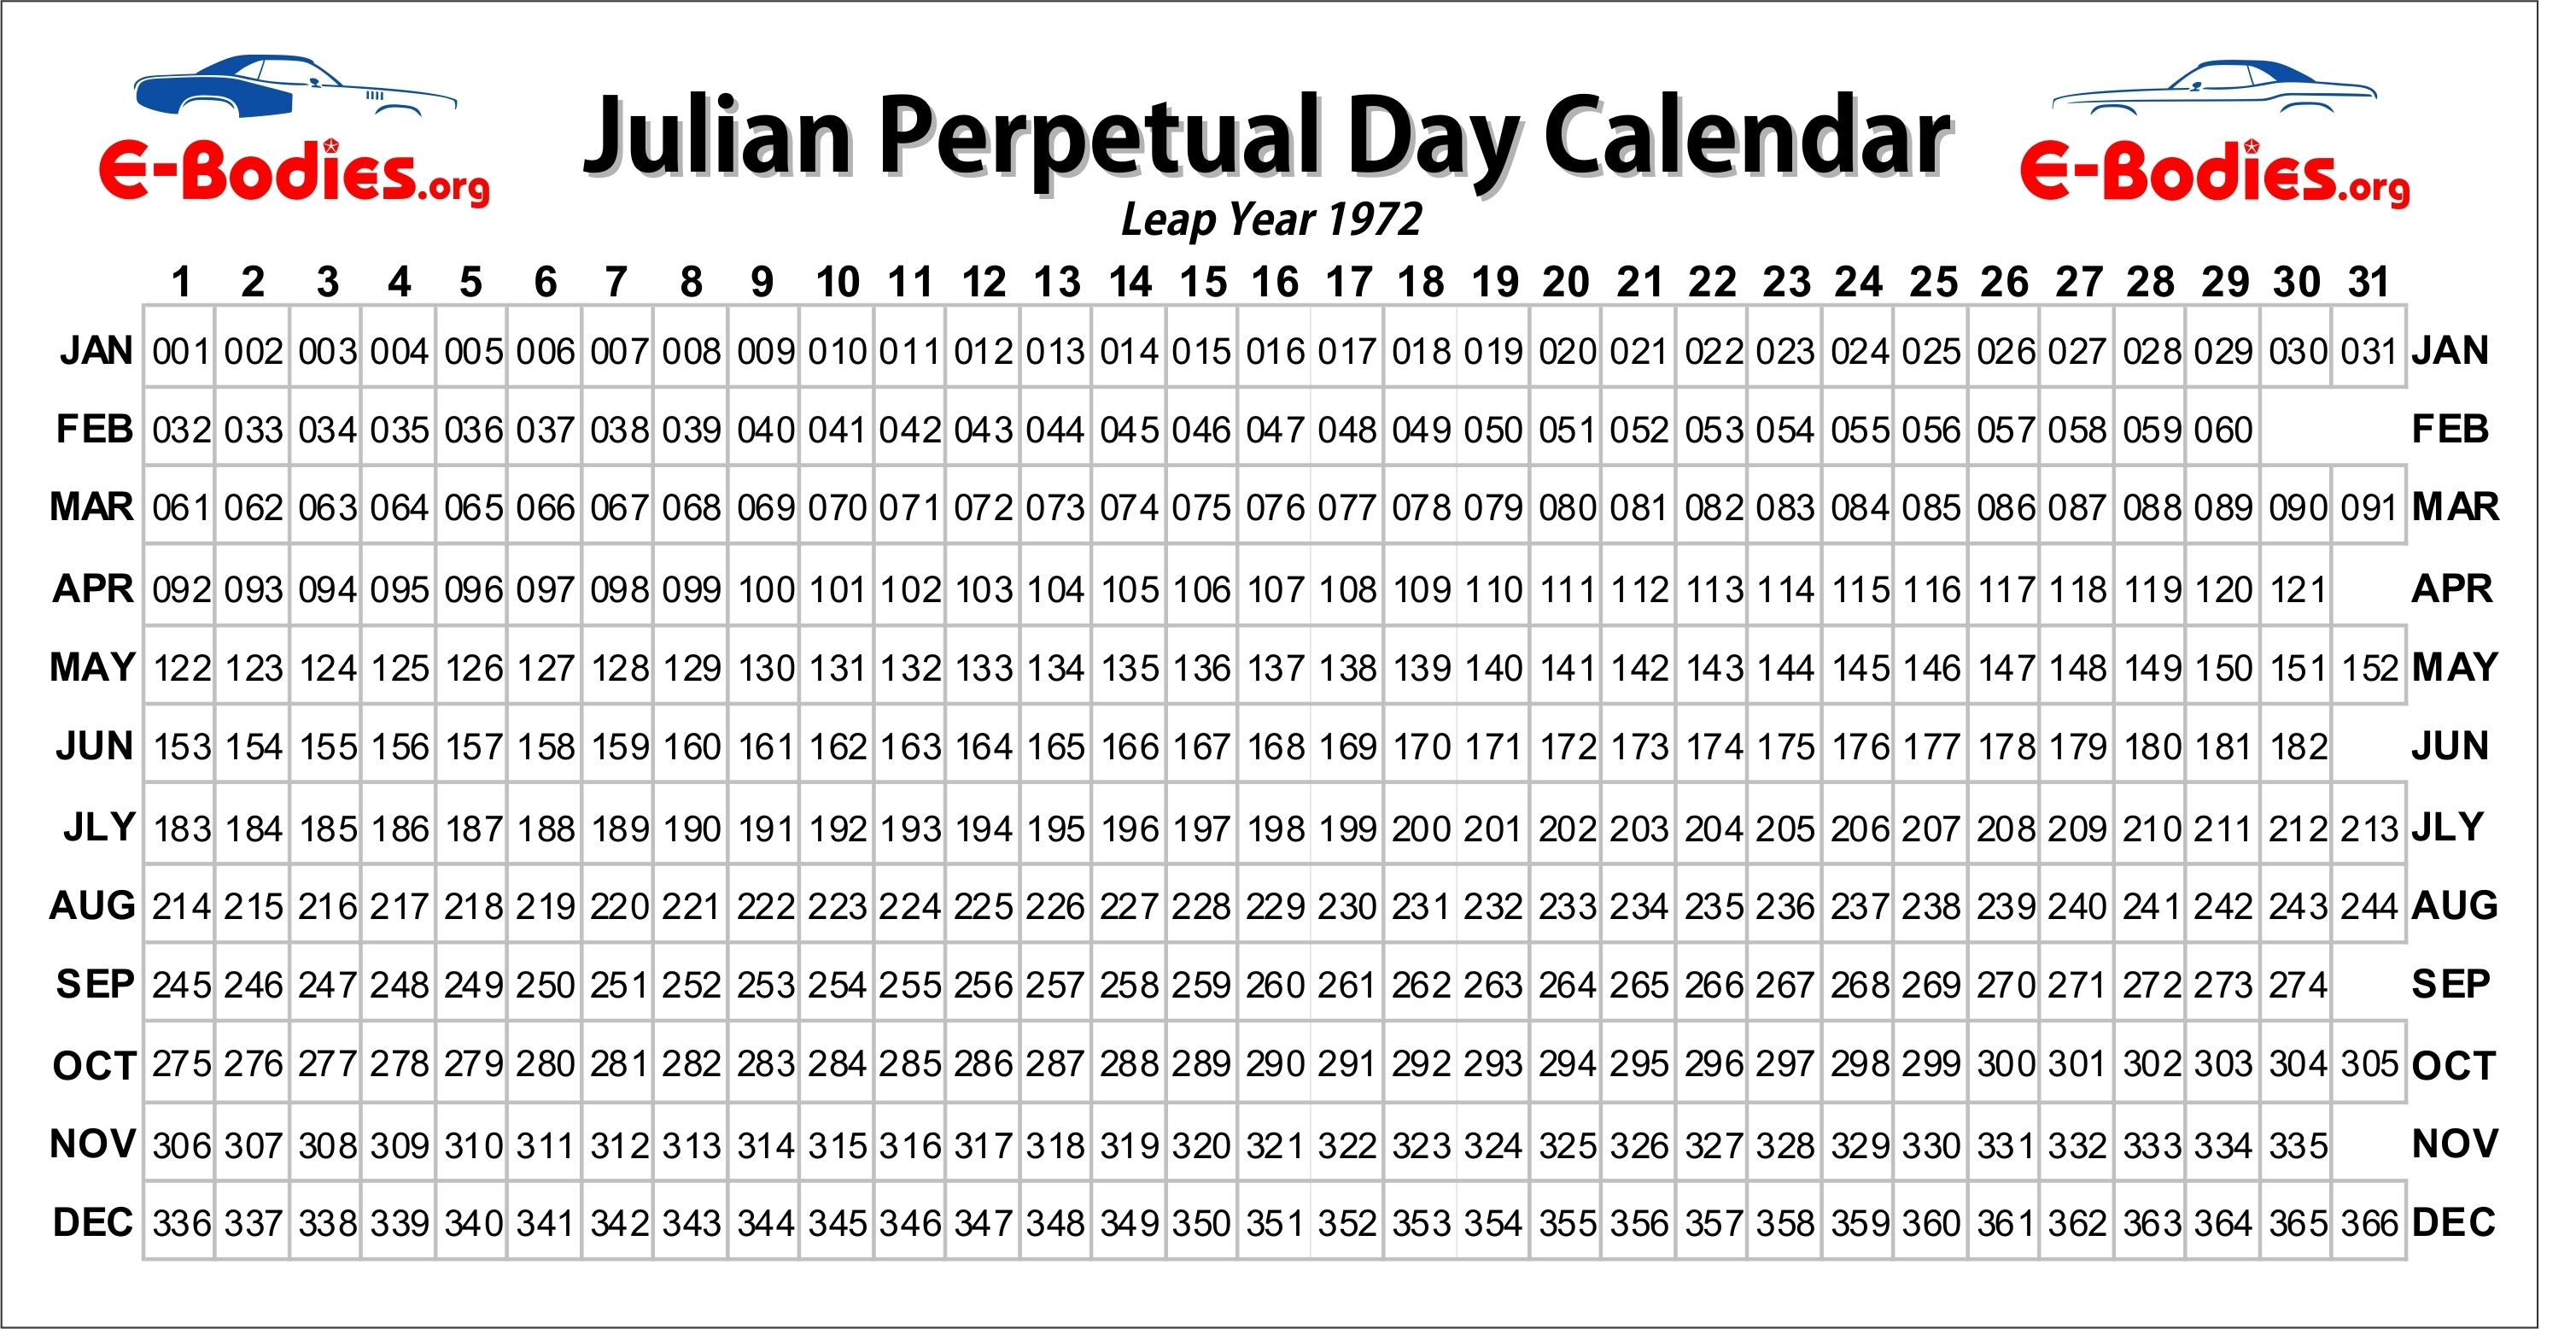 Mopar Julian Perpetual Day Calendar Leap Year – E-Bodies with regard to Julian Calendar For Leap Year